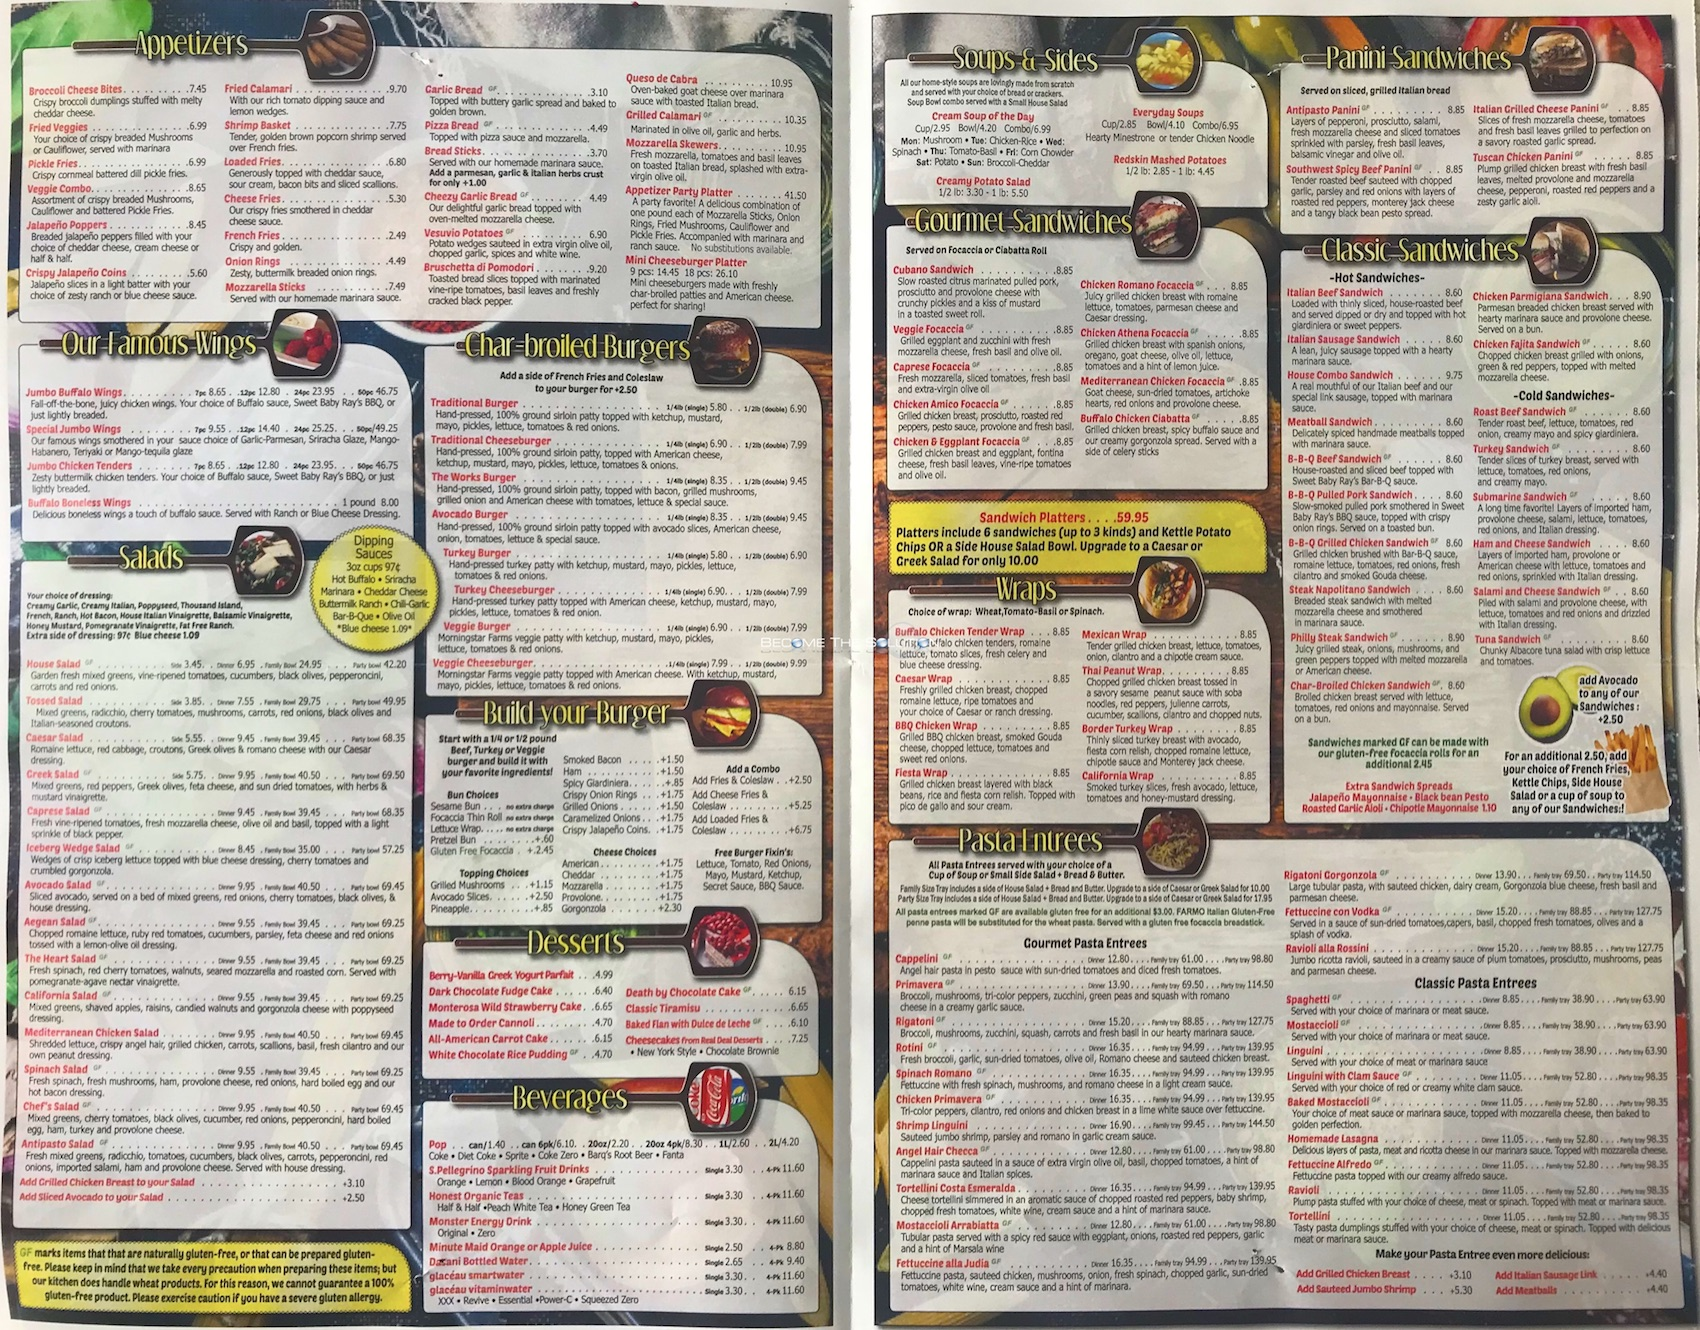 Chicago's pizza chicago menu 2